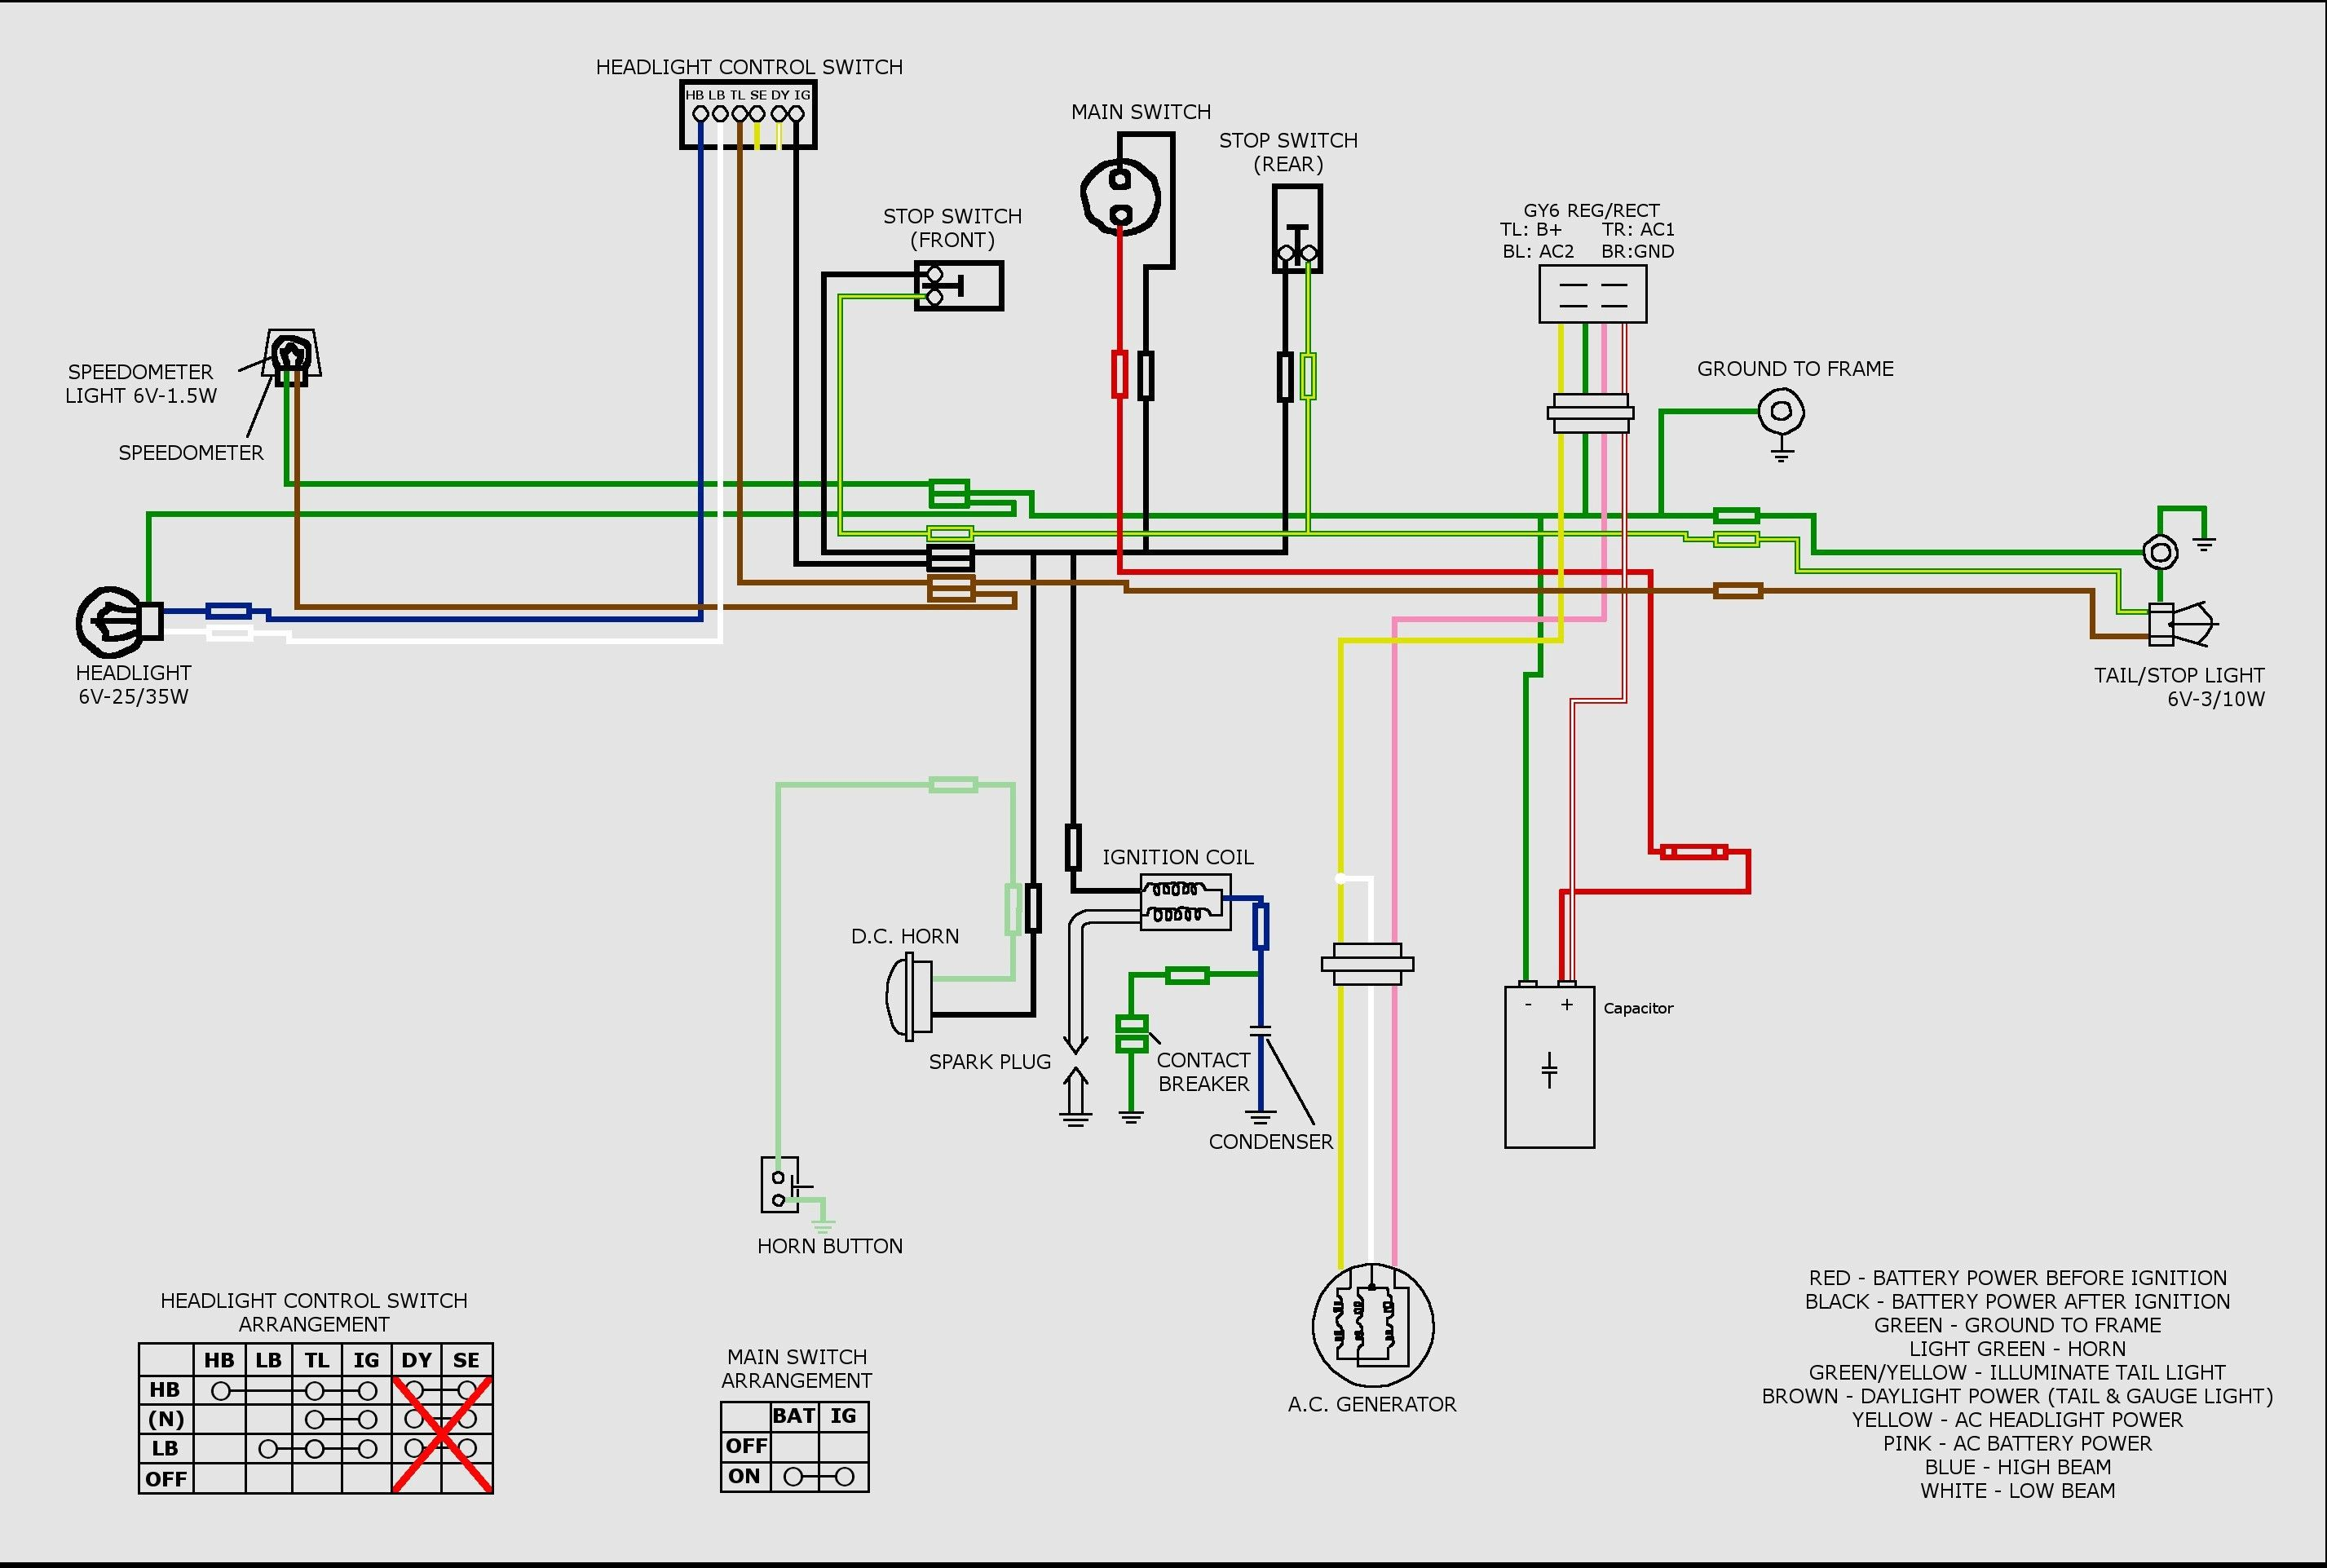 Awe Inspiring Gy6 Lighting Diagram Wiring Diagram Data Wiring Digital Resources Funapmognl